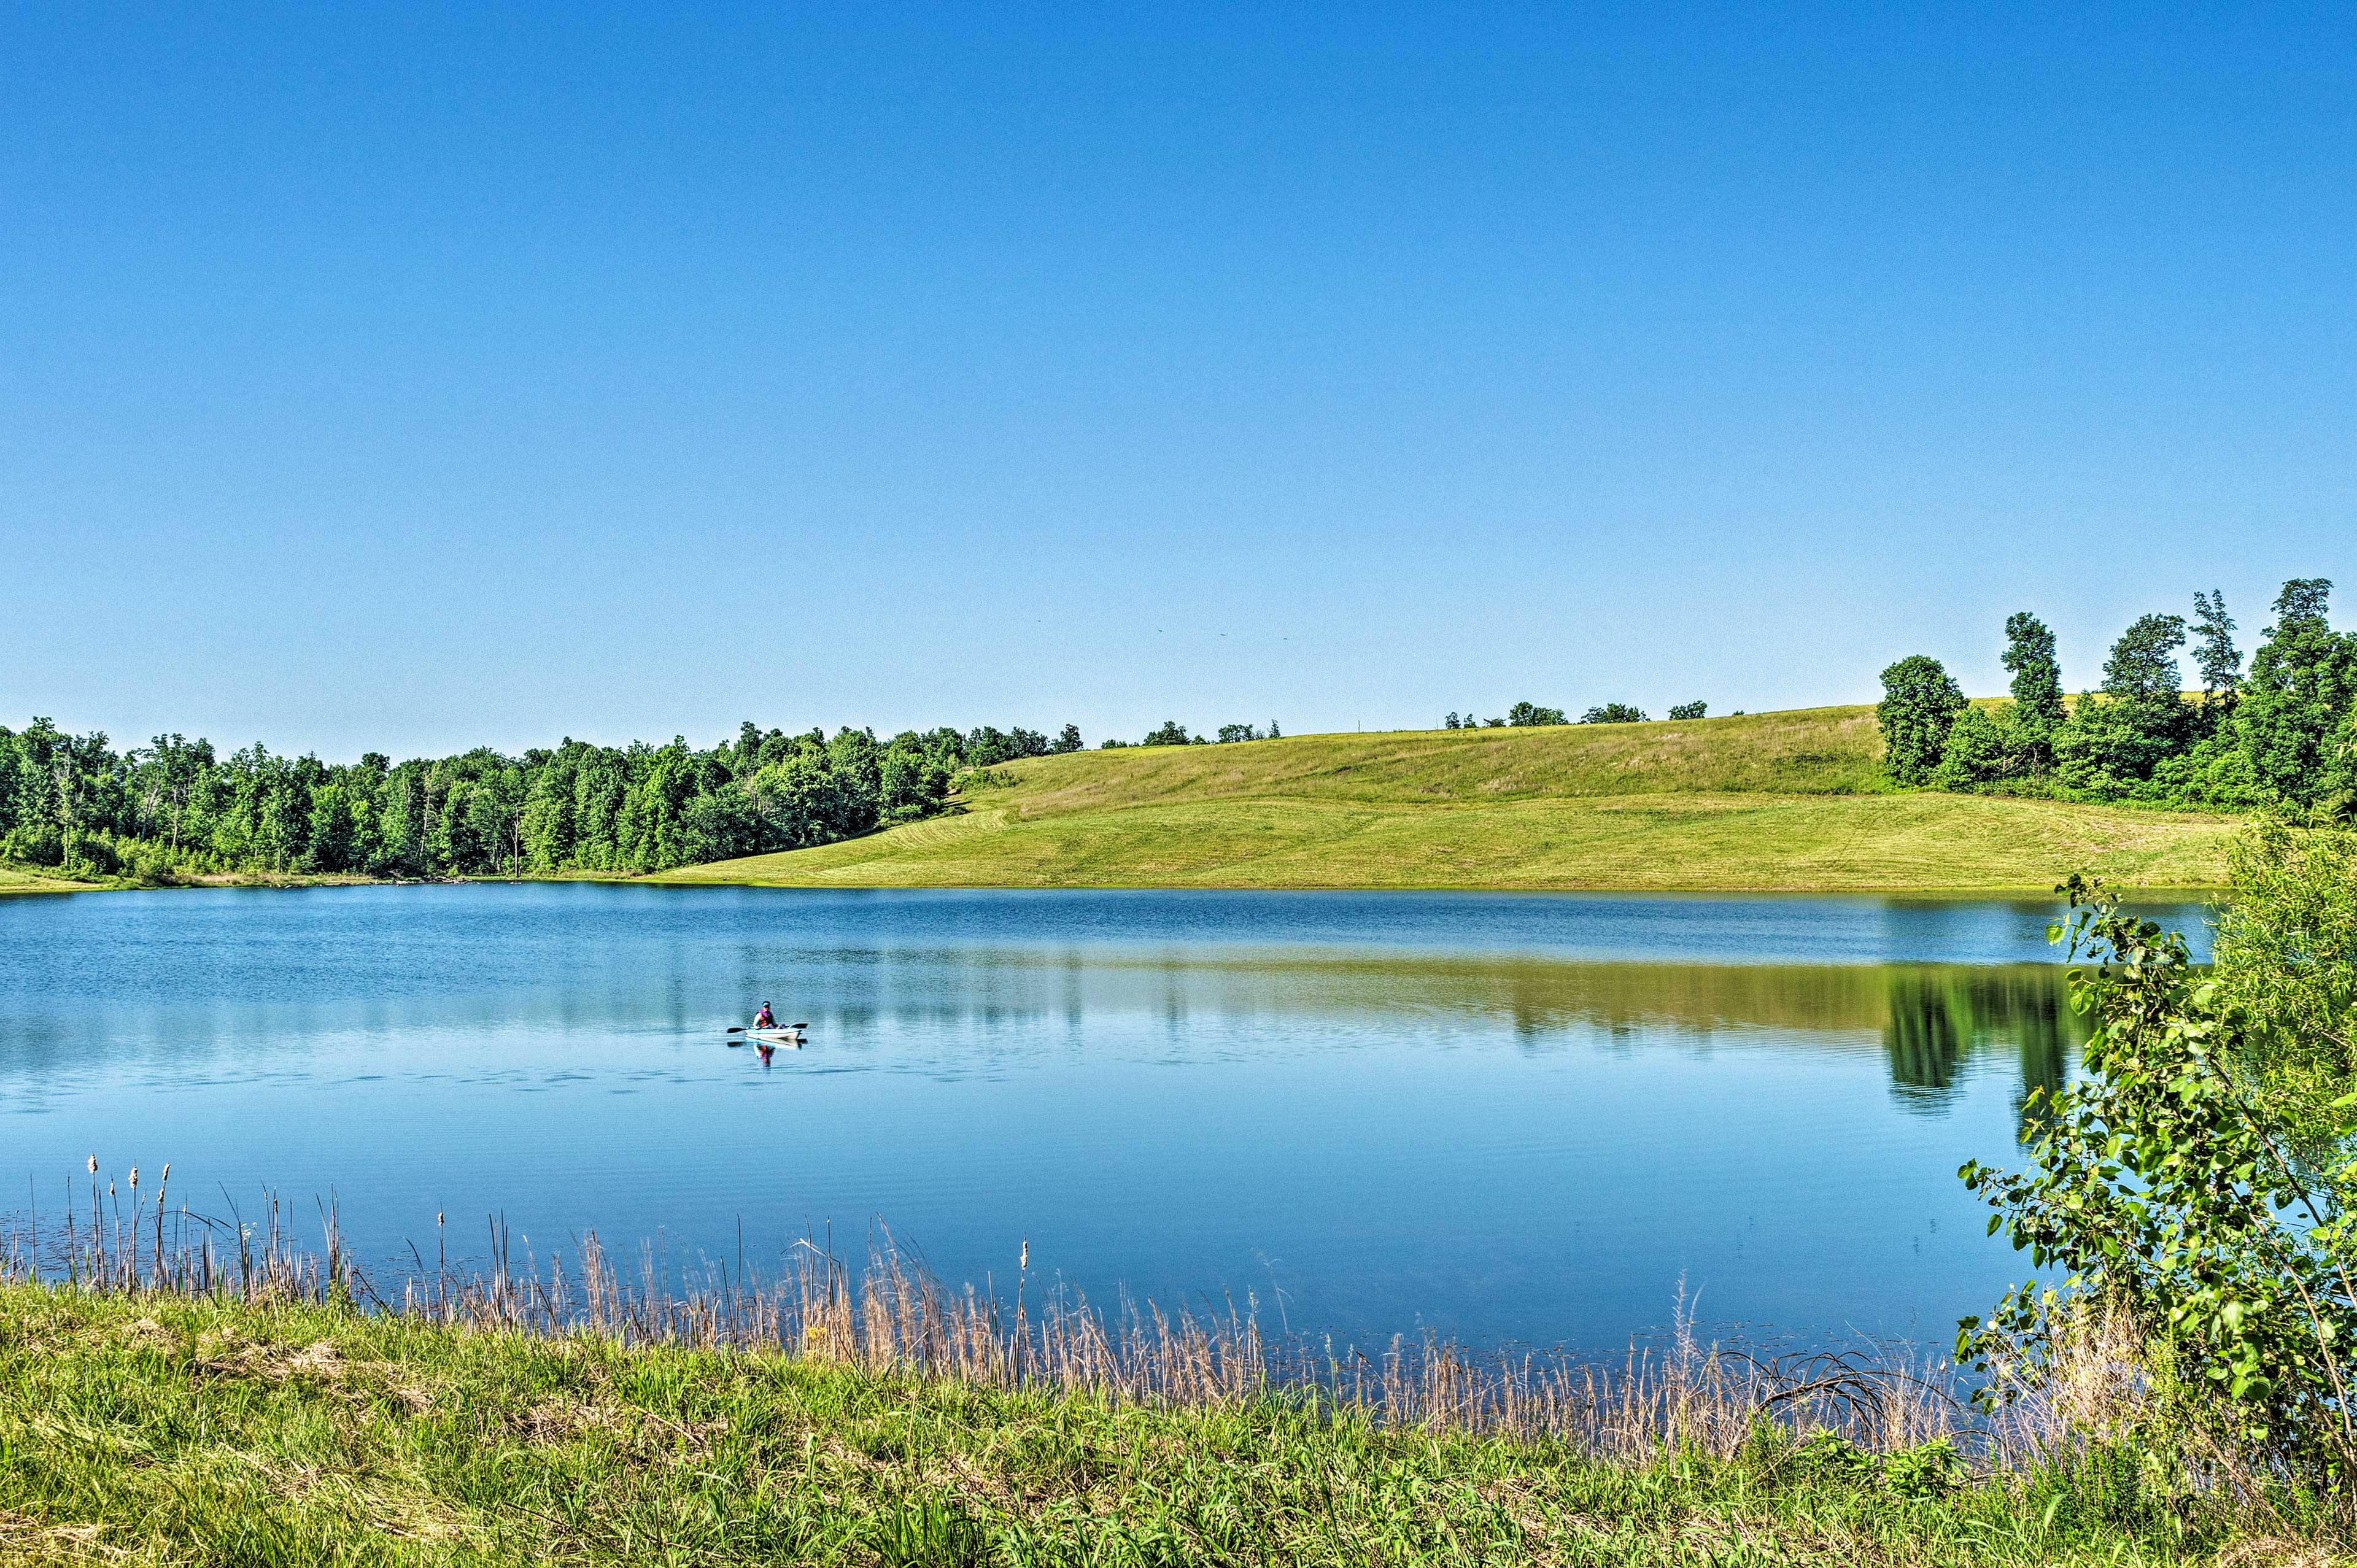 Spend the day kayaking on the community lake locates 0.5 miles from the cabin.